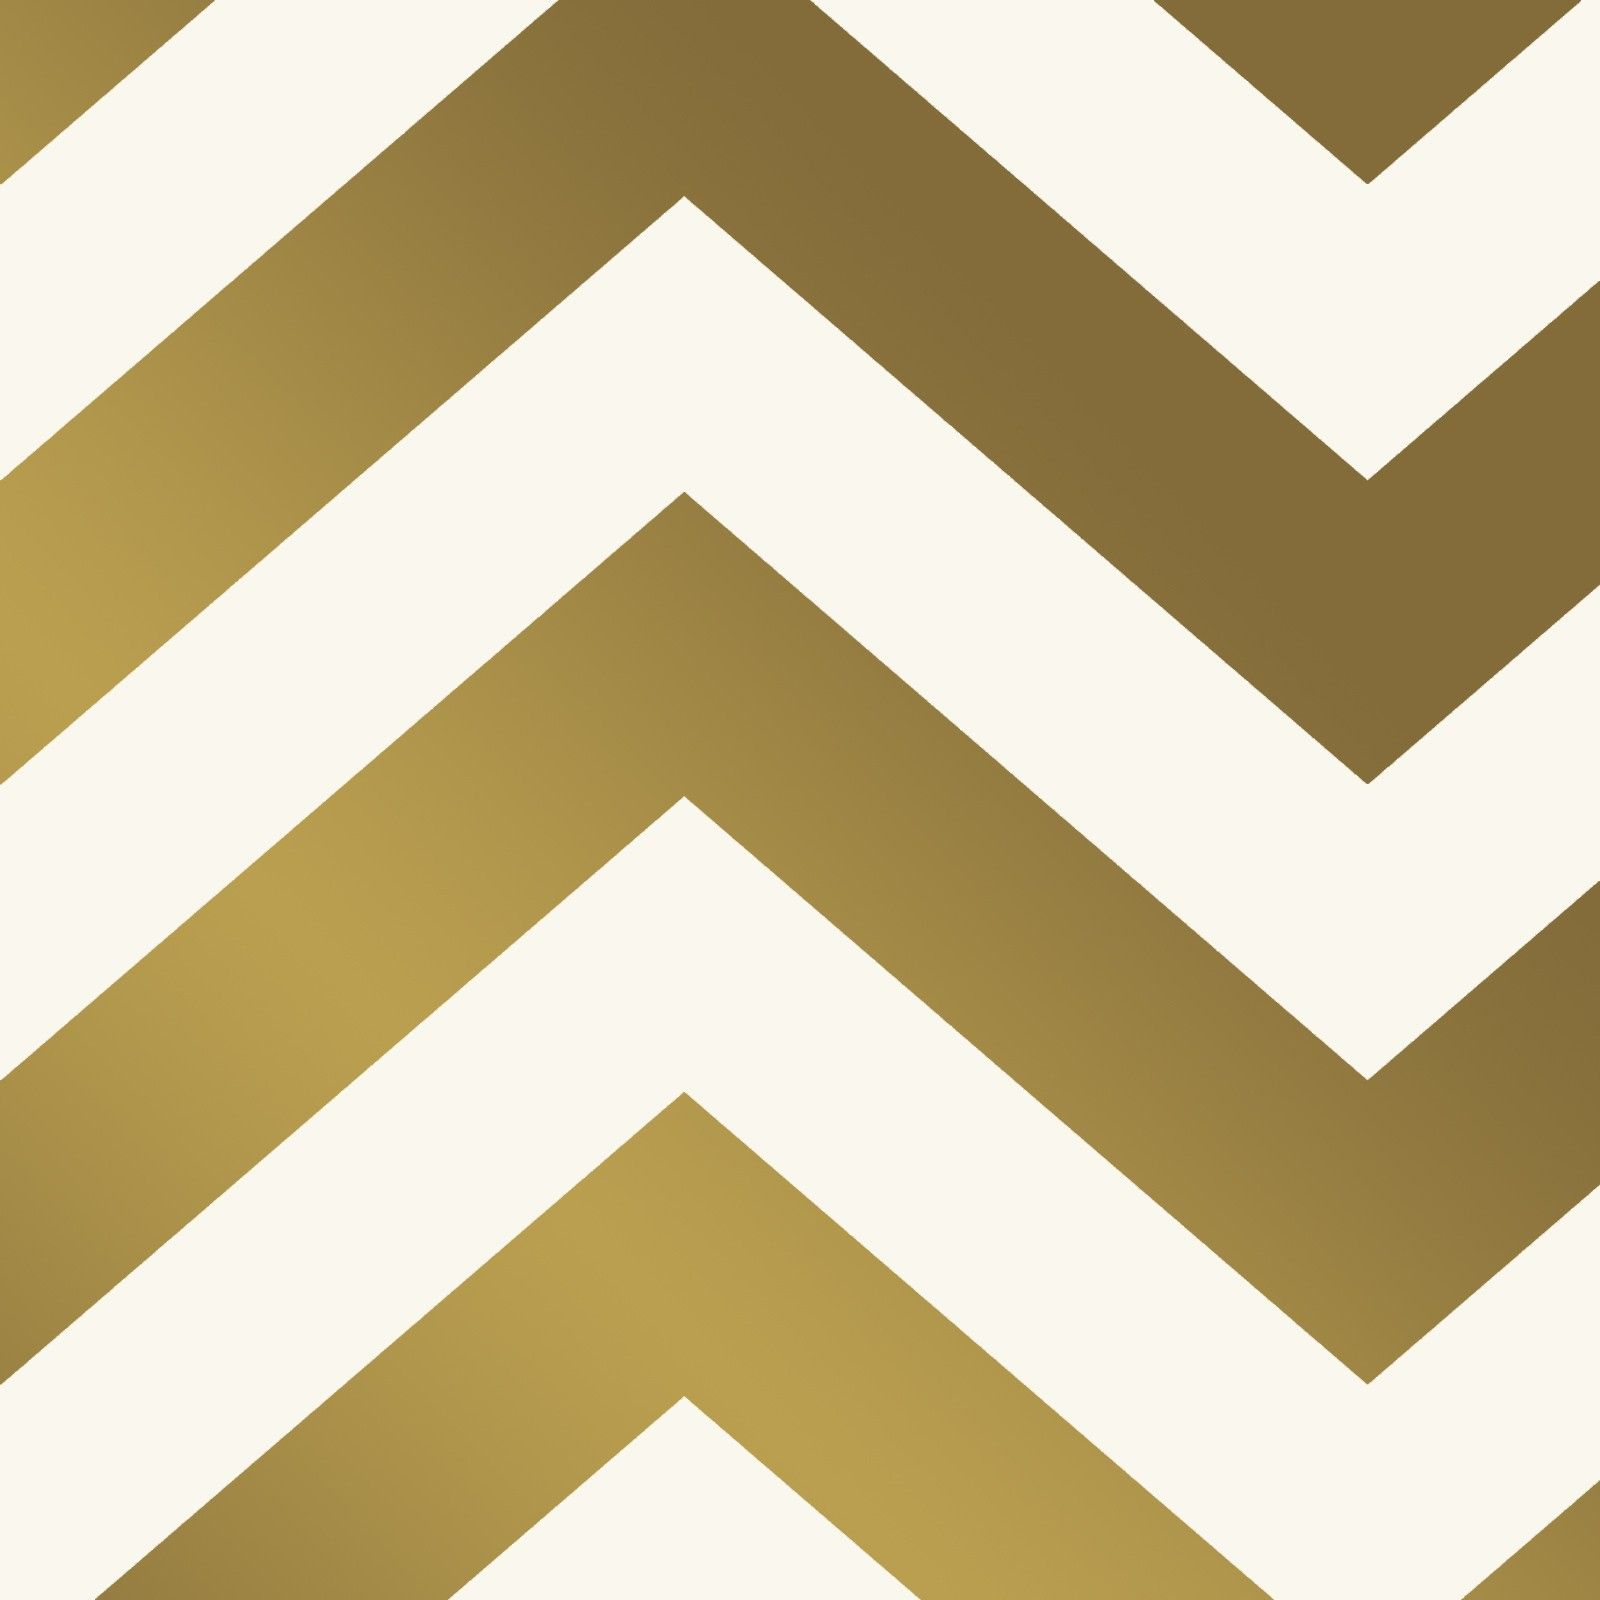 Wallpaper - Chevron - Metallic Gold